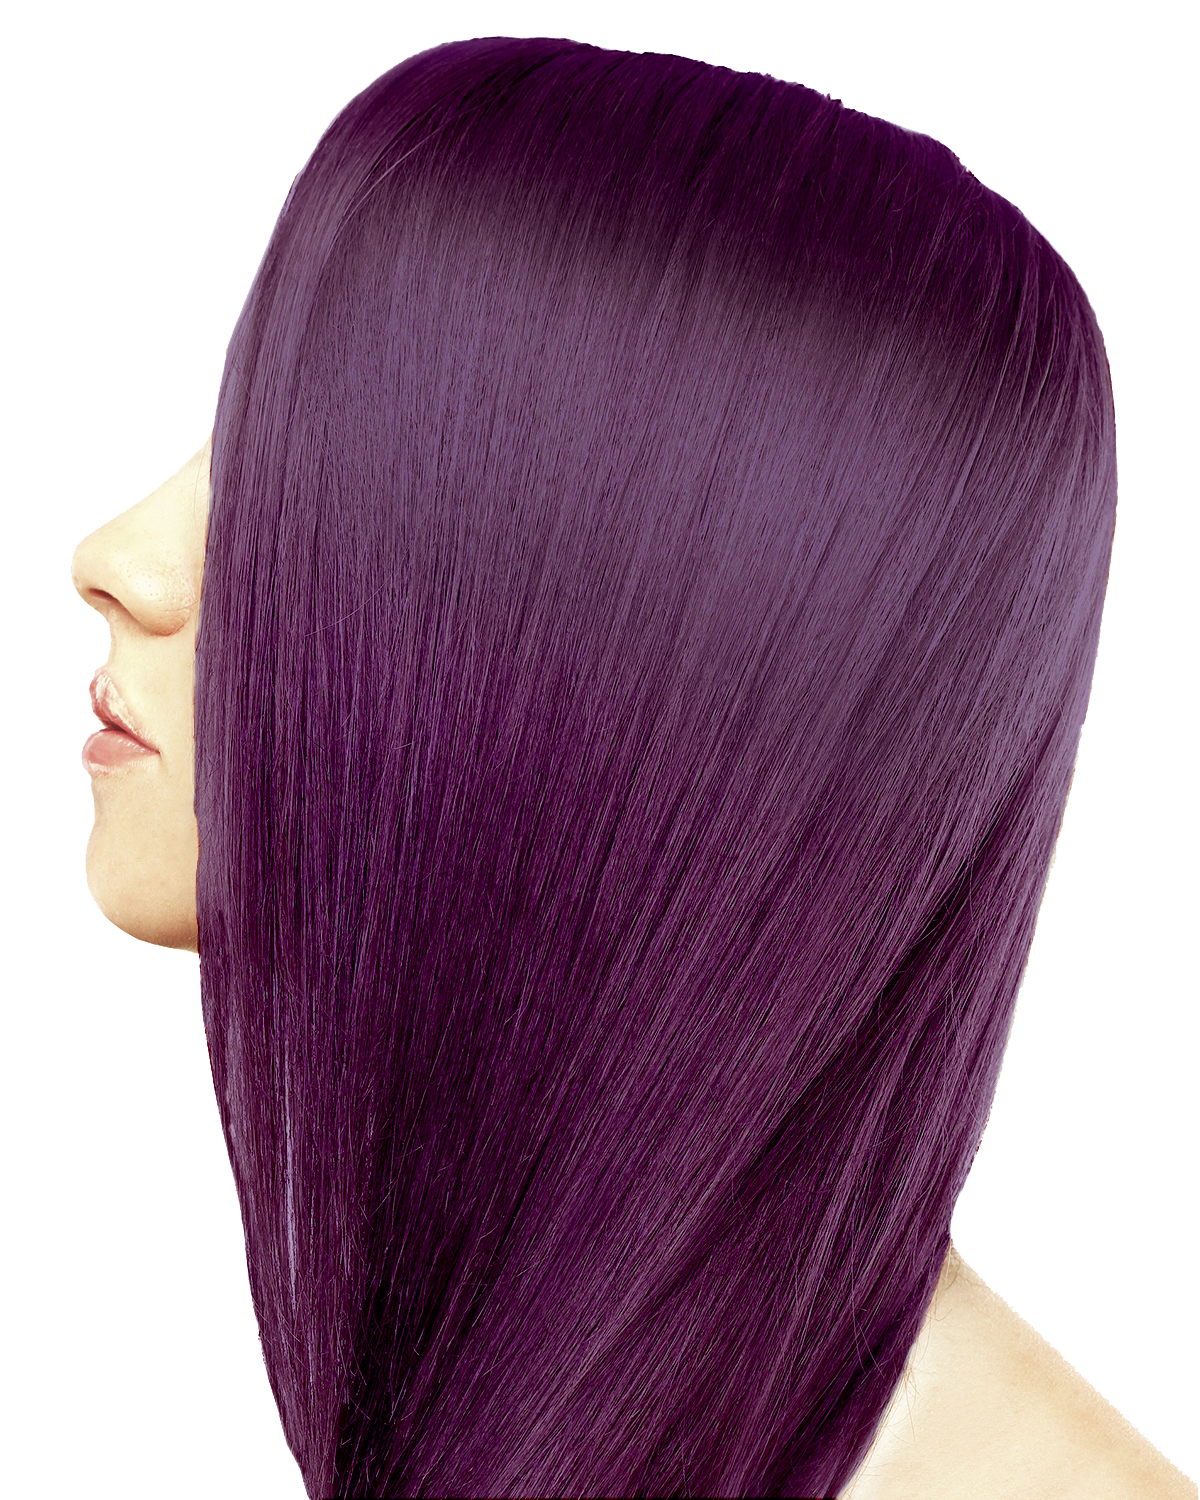 Ion color brilliance intensive shine demi permanent creme hair is  state of the art european ionic formula that luxurious long lasting also rh pinterest